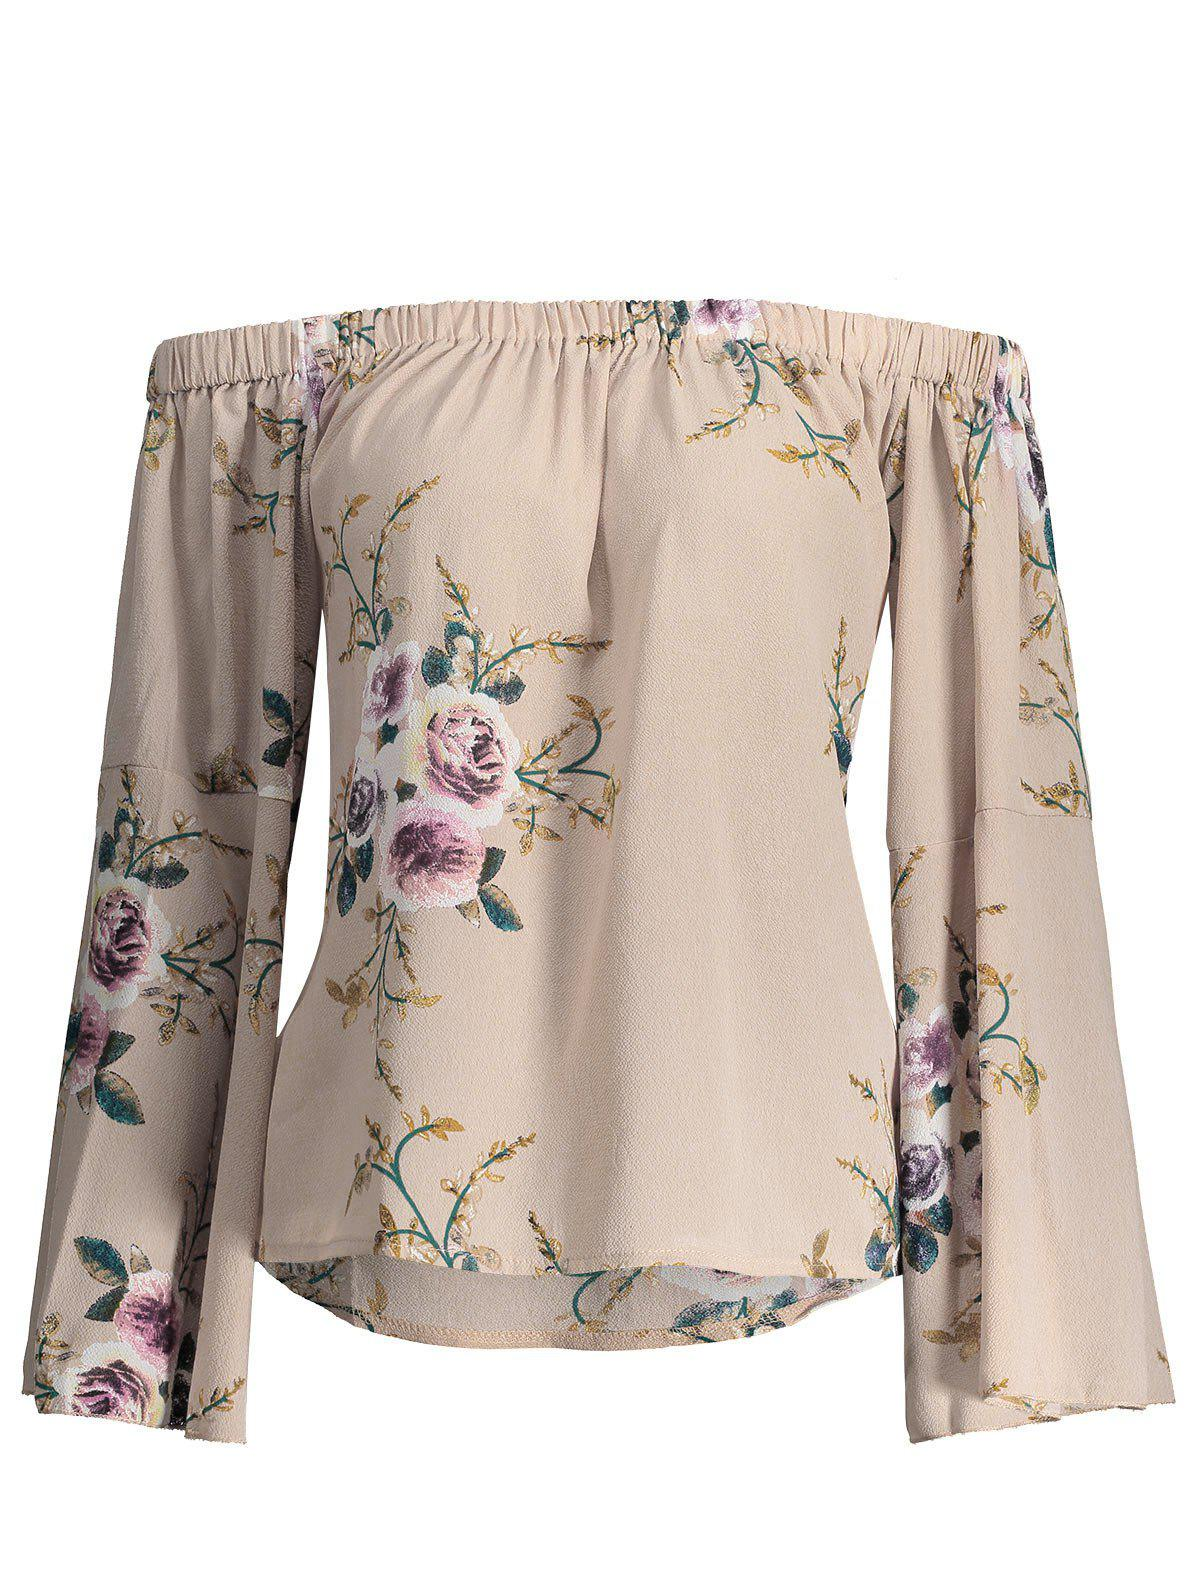 Floral Print Plus Size Off Shoulder BlouseWOMEN<br><br>Size: 4XL; Color: LIGHT BEIGE; Material: Polyester,Spandex; Shirt Length: Regular; Sleeve Length: Full; Collar: Off The Shoulder; Style: Fashion; Season: Fall,Spring; Pattern Type: Floral; Weight: 0.3000kg; Package Contents: 1 x Blouse;